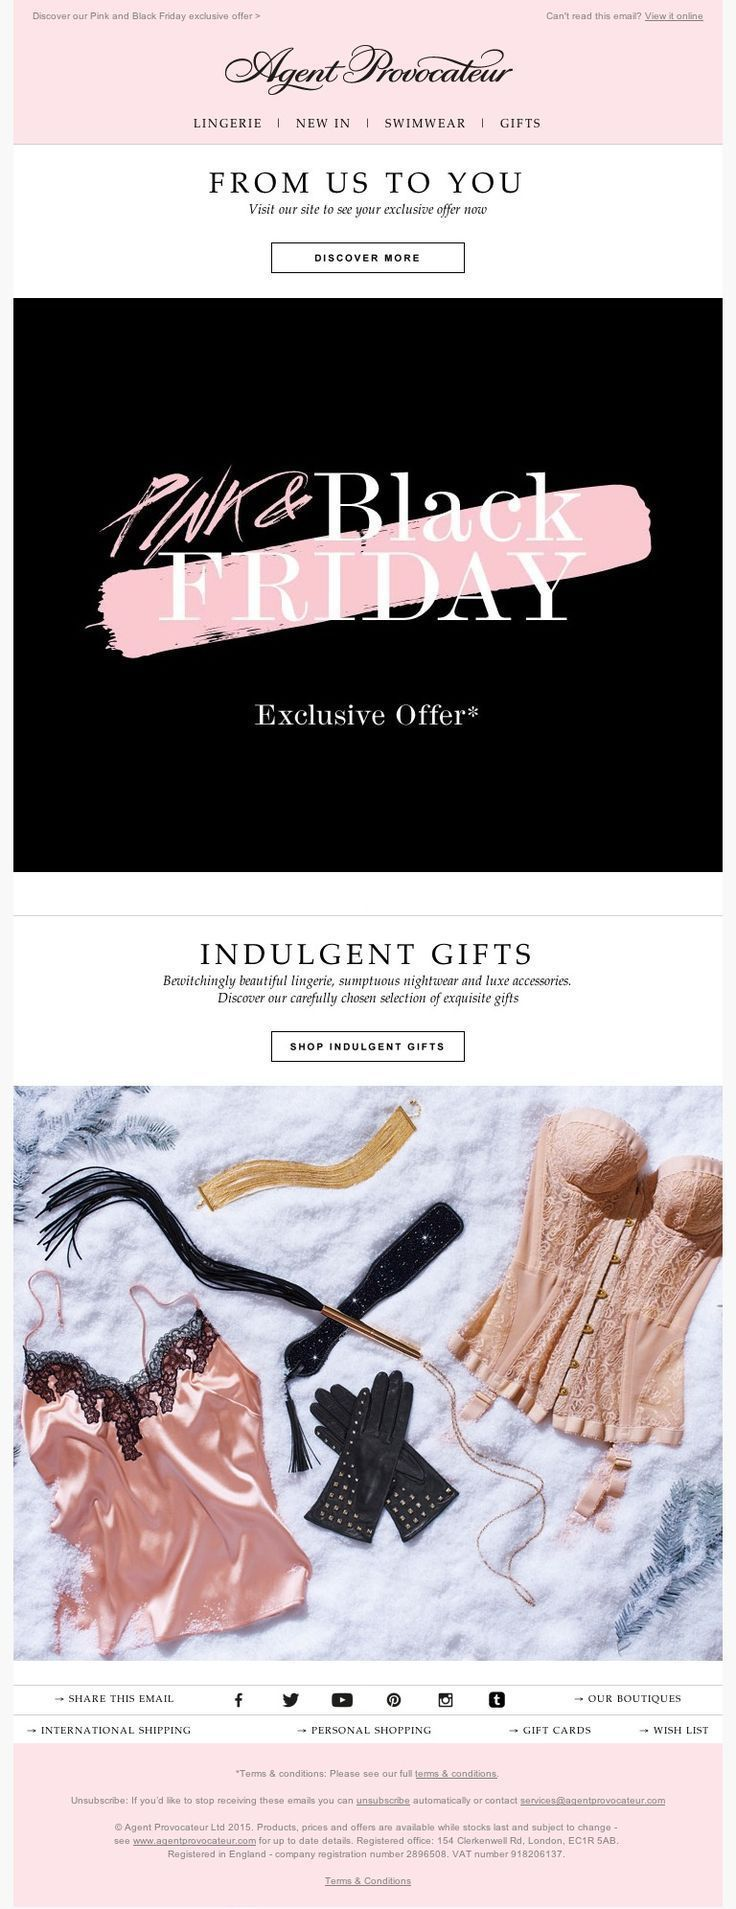 Agent Provocateur - 27.11.15 SL: Pink and Black Friday. If you like UX, Design, ..., #Agent .... #blackfridaymemes